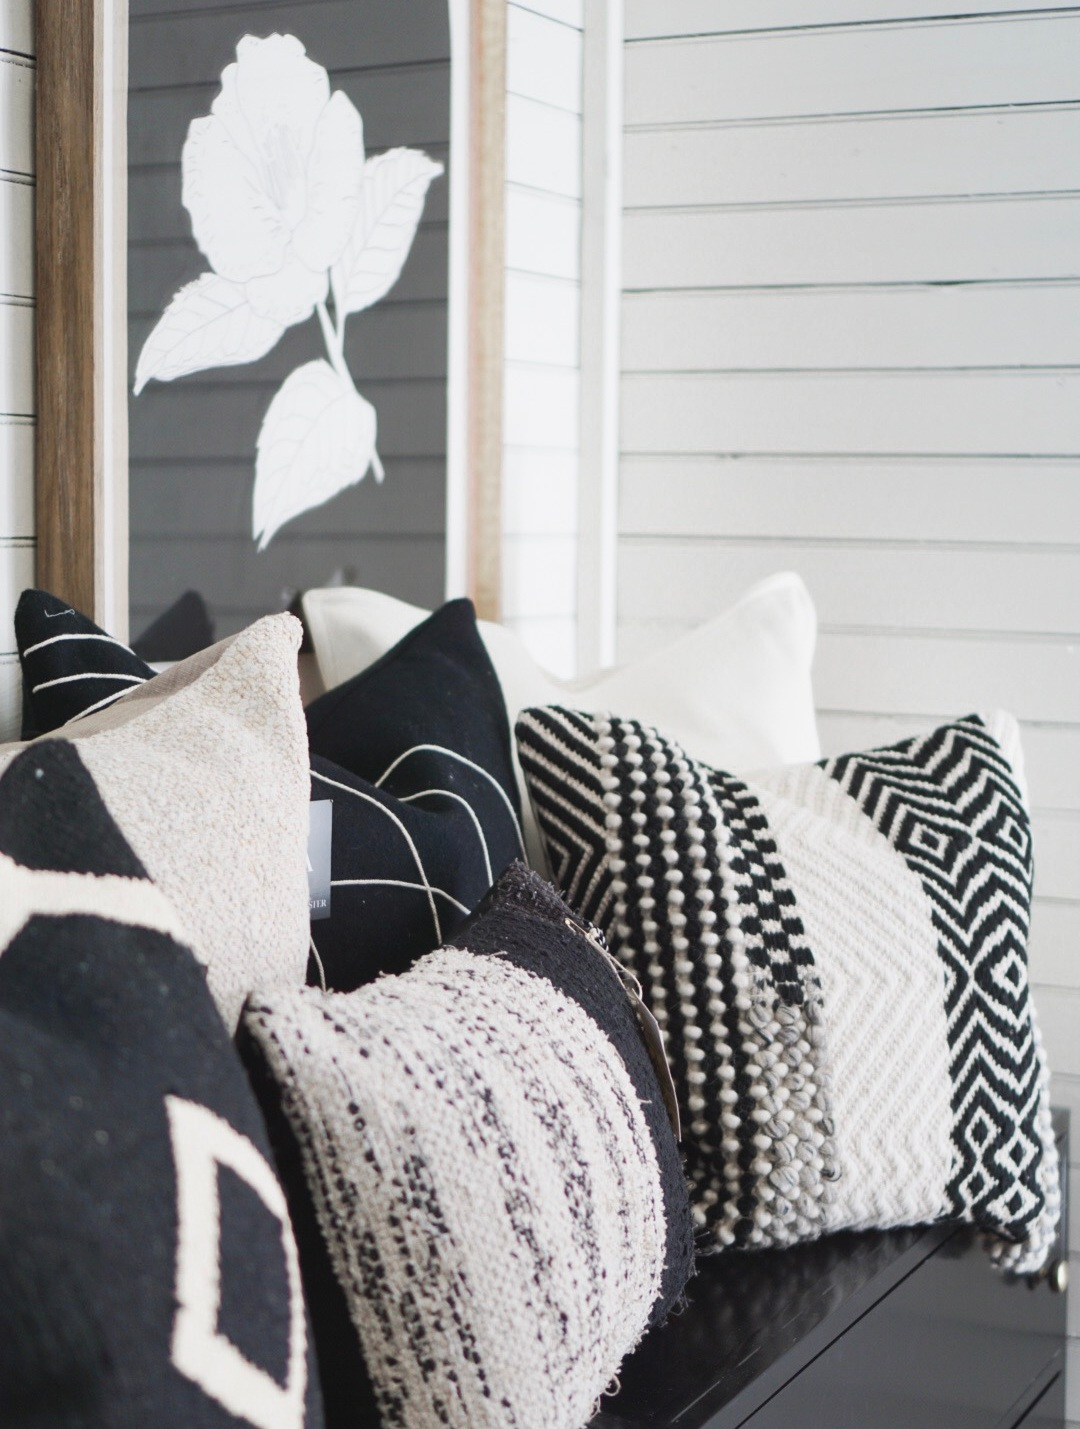 Shop our hand picked selection of luxurious pillows. -